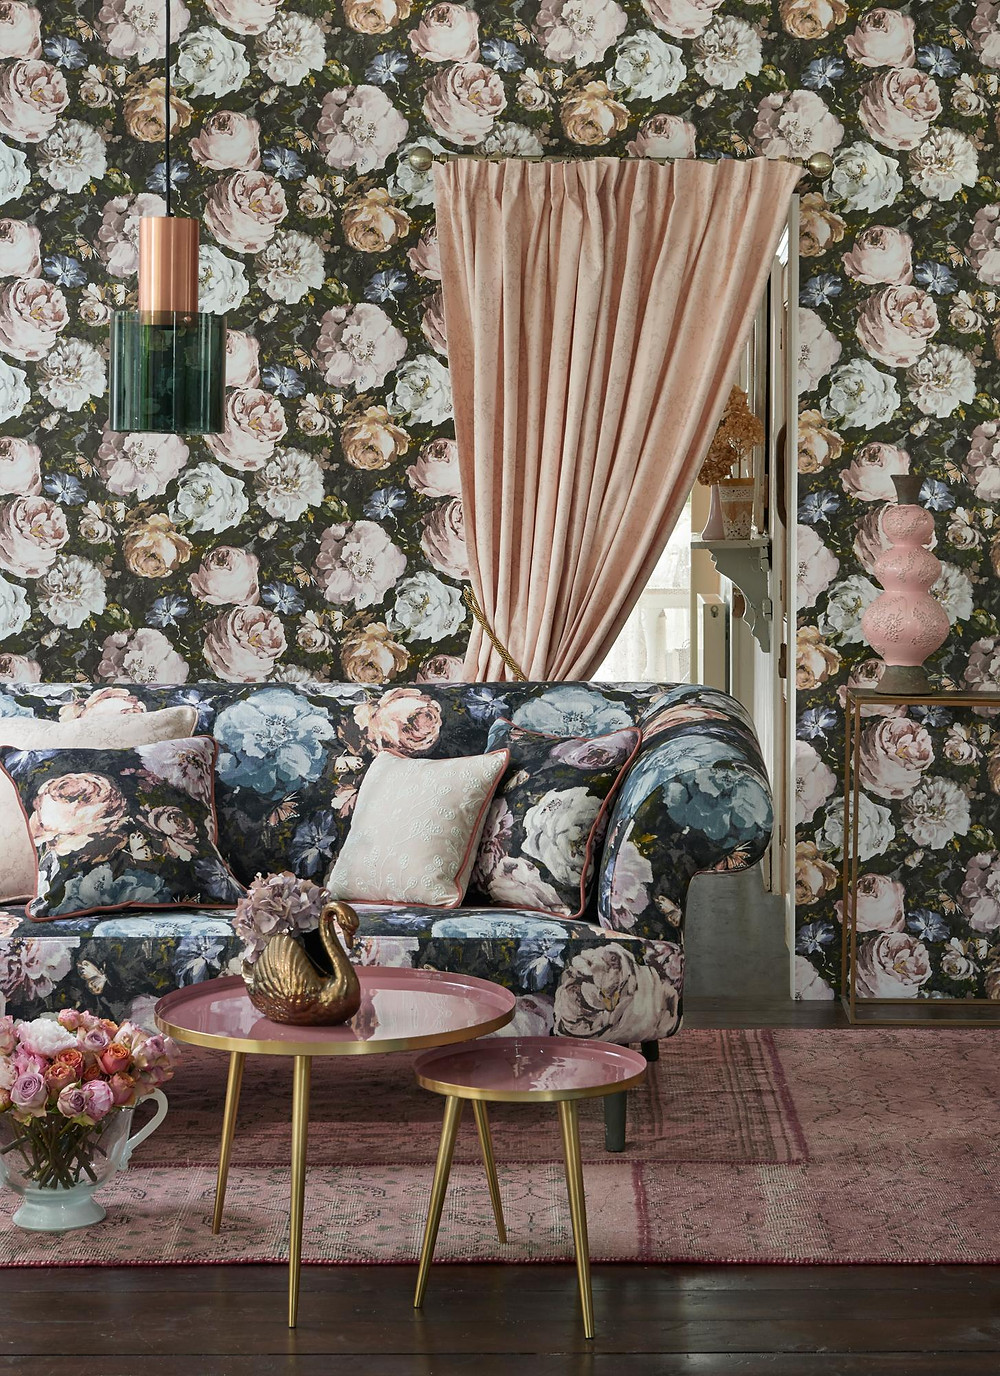 Floretta Charcoal Clarke & Clarke wallpaper floral - 15 best floral wallpapers for a moody look - how to decorate your interiors with moody floral wallpaper